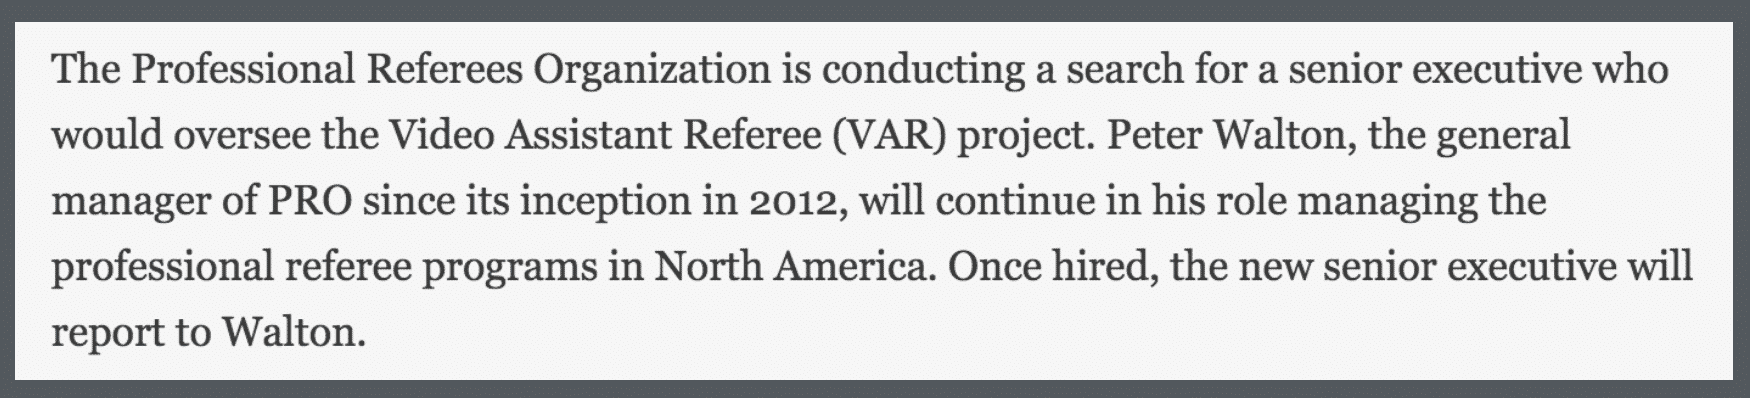 Déclaration de la Professional Referee Organization (PRO). Source : mlssoccer.com